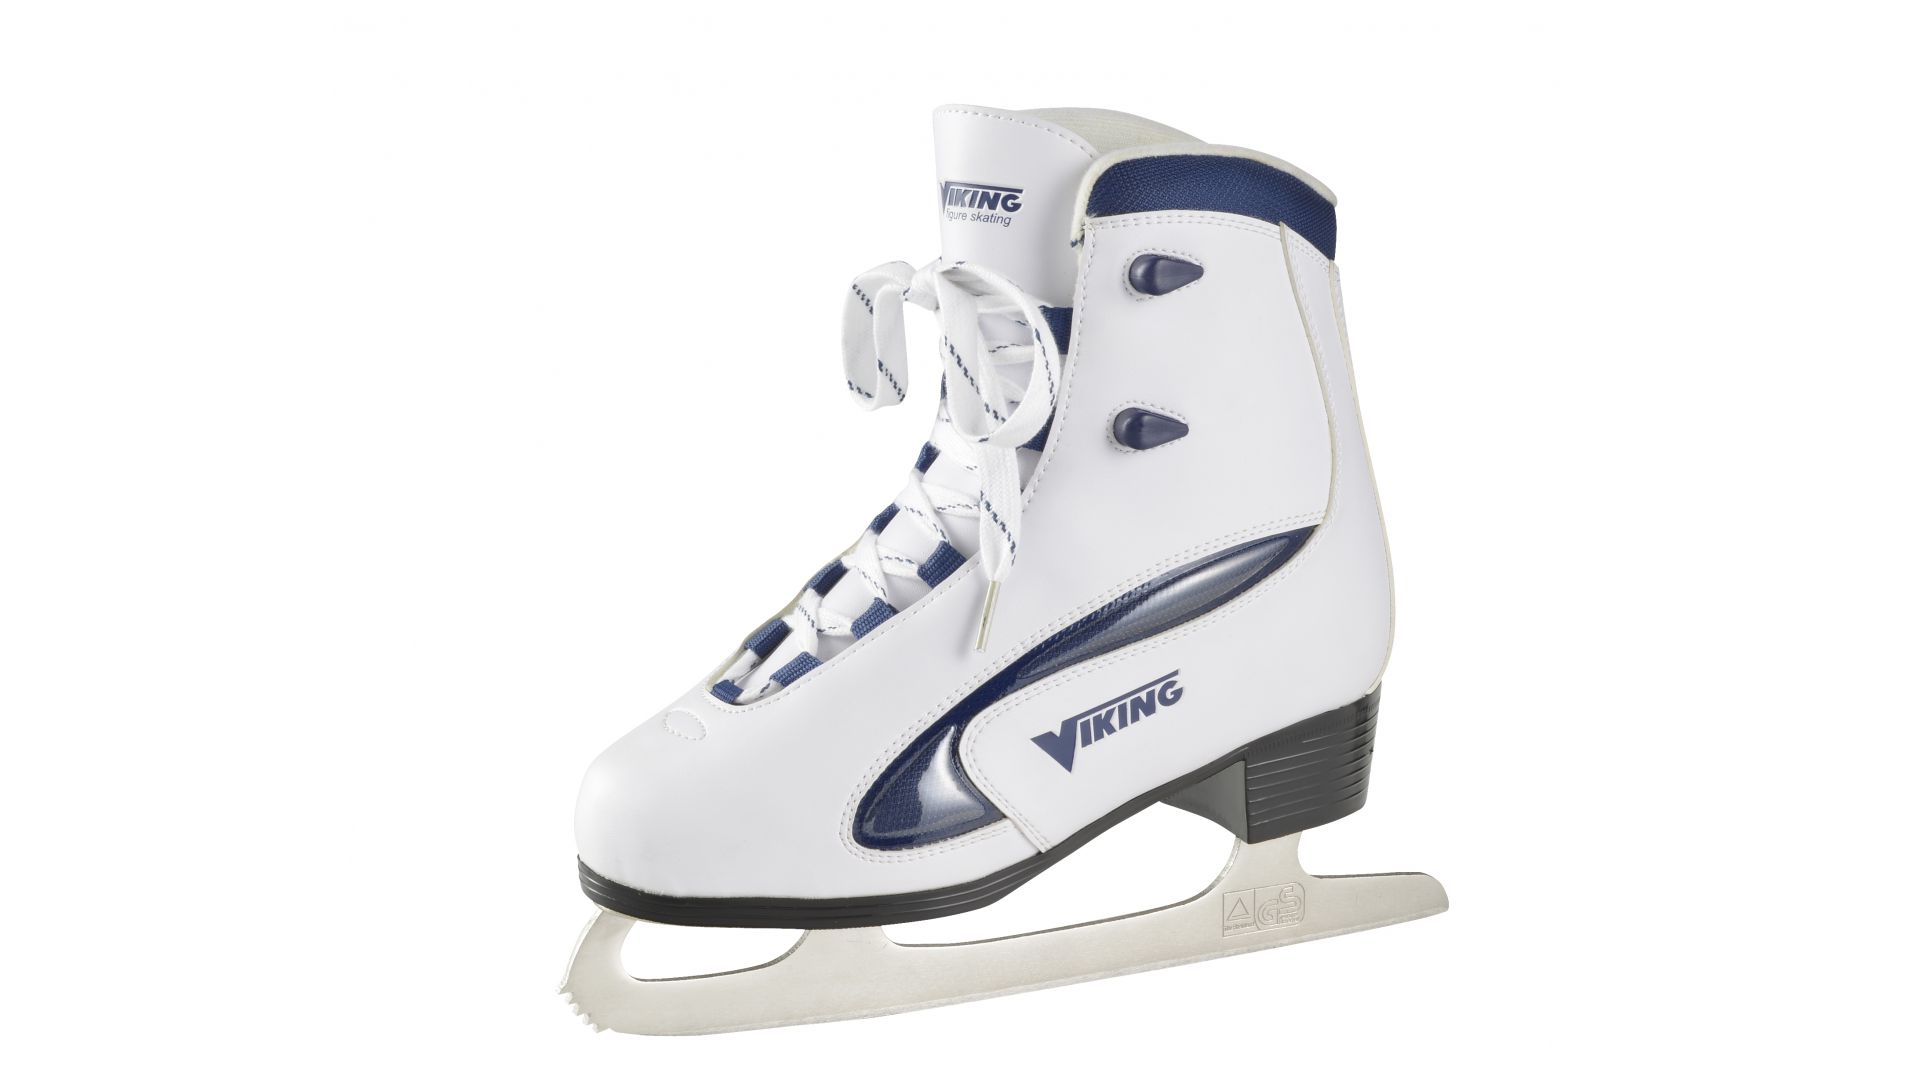 Viking Figure skate